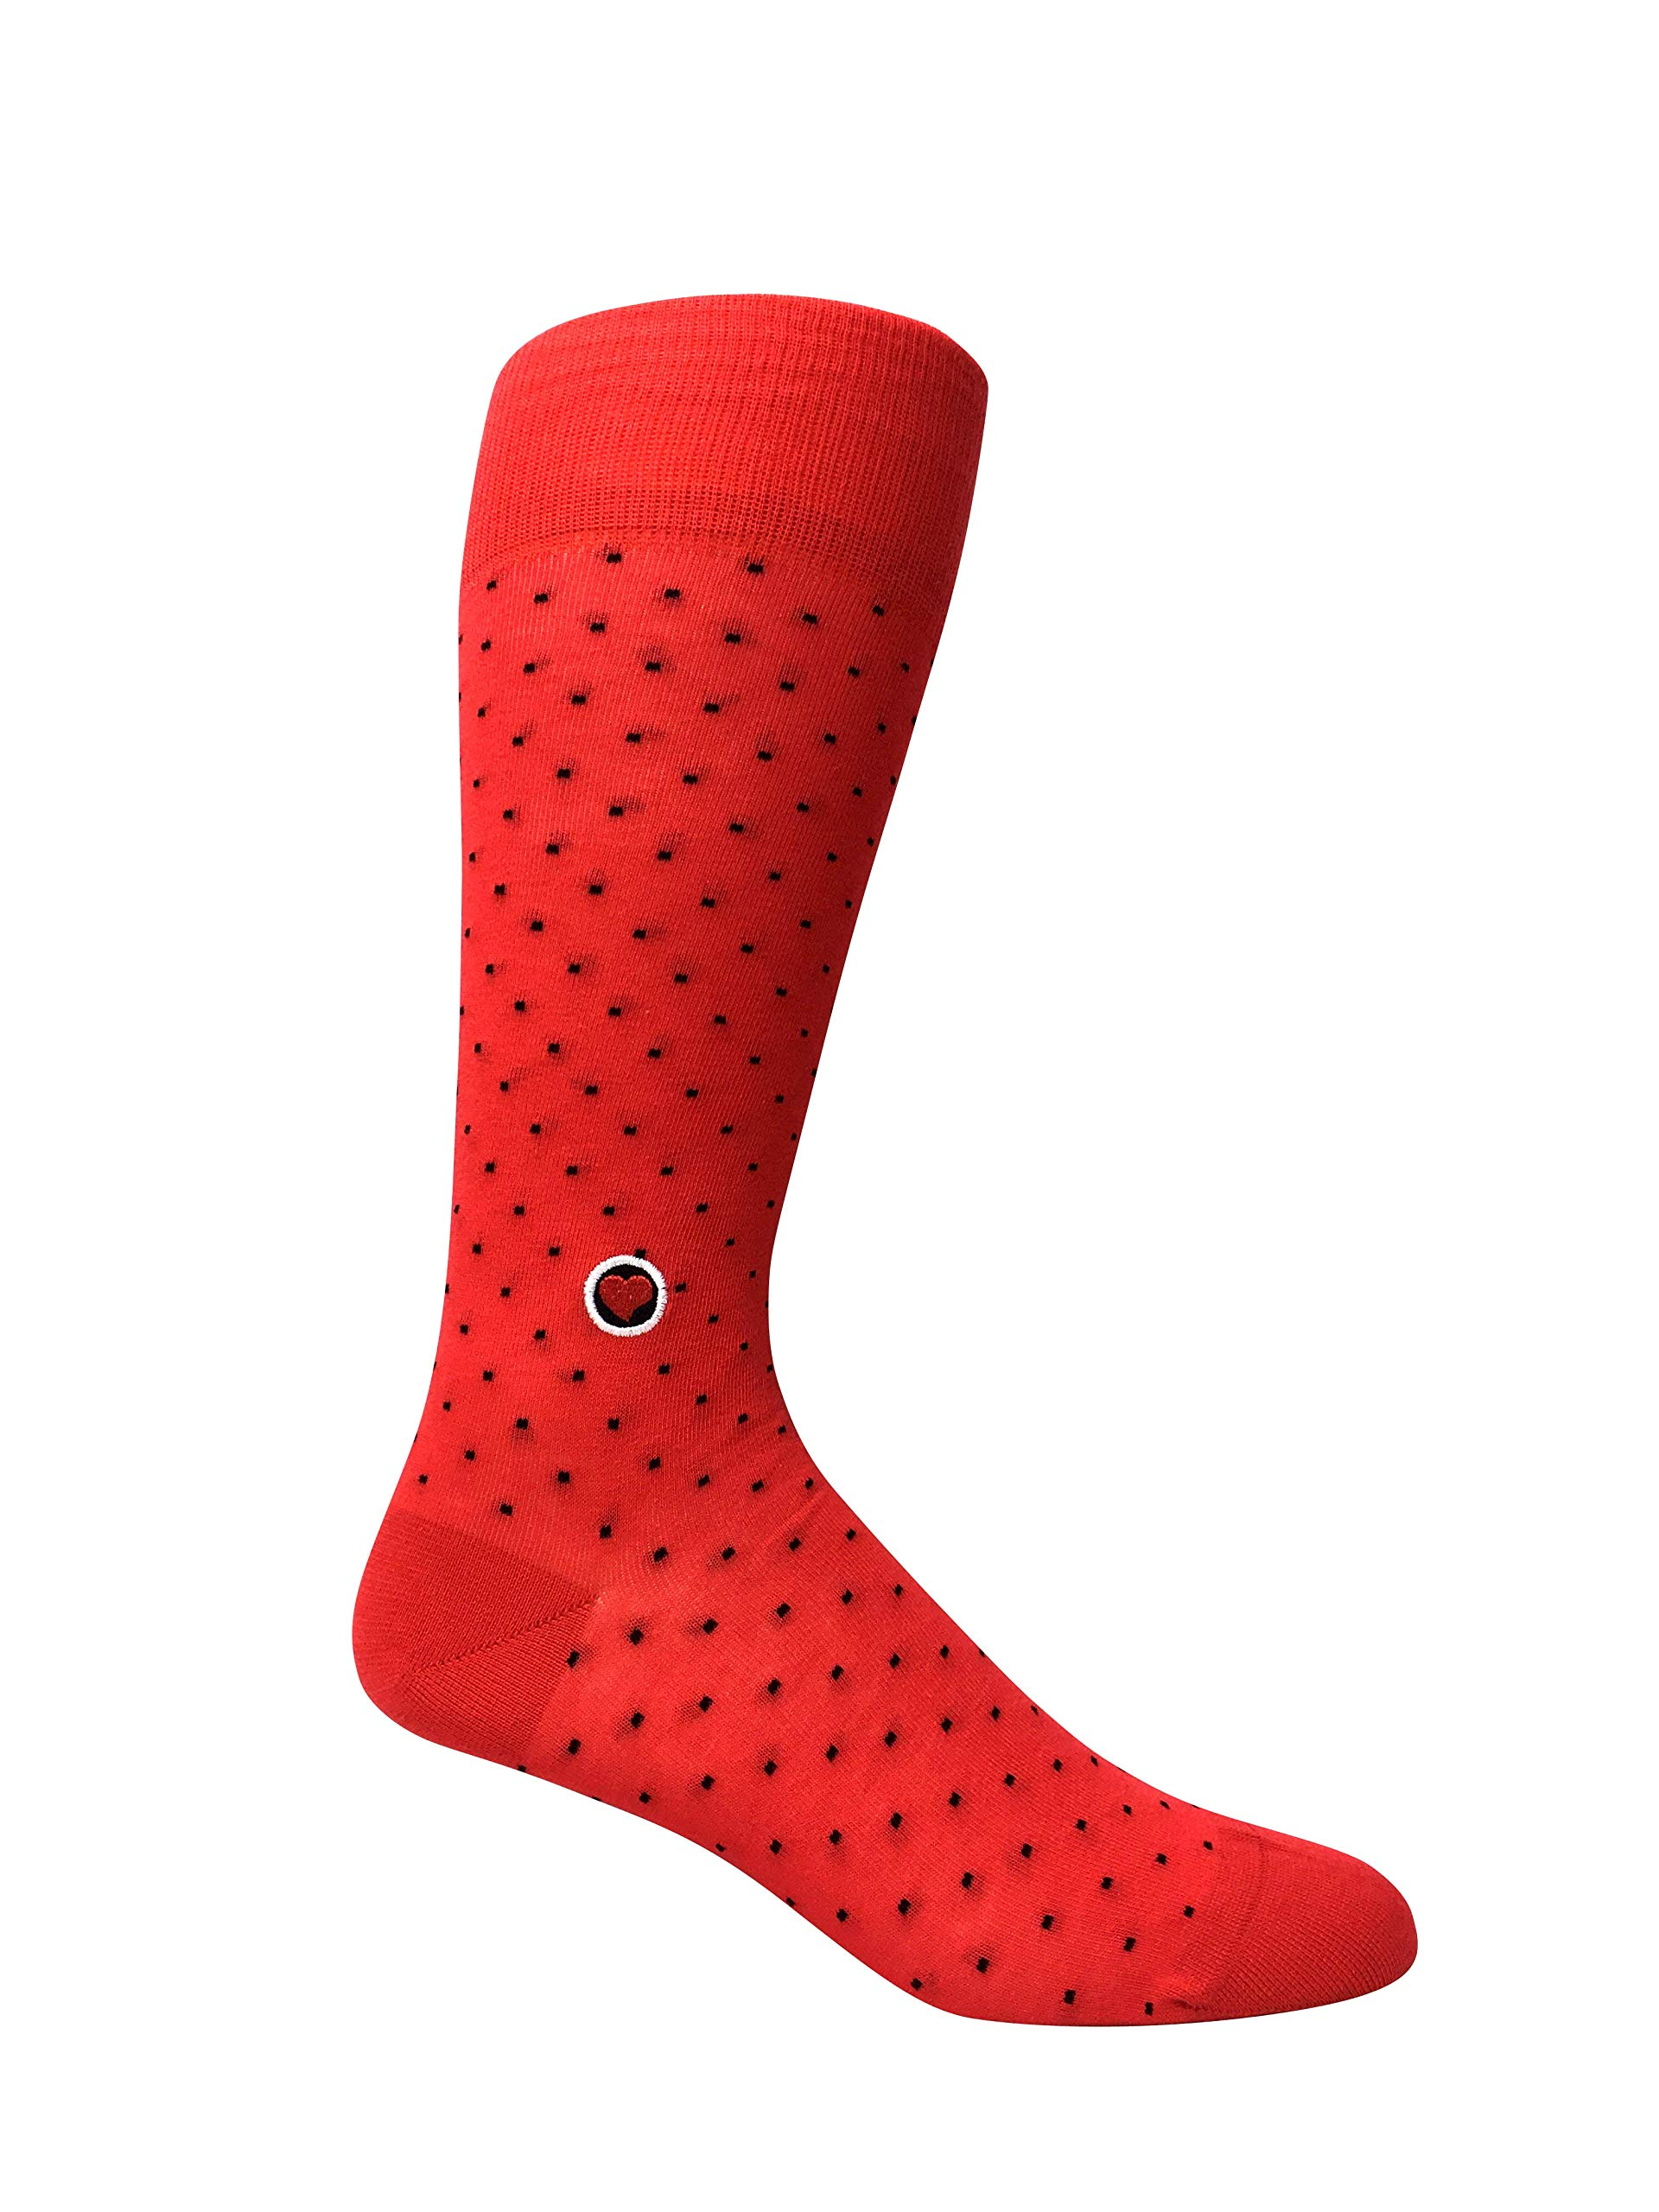 Men's Red Dress Socks with Polka Dots - Biz Dots Red for Groomsmen